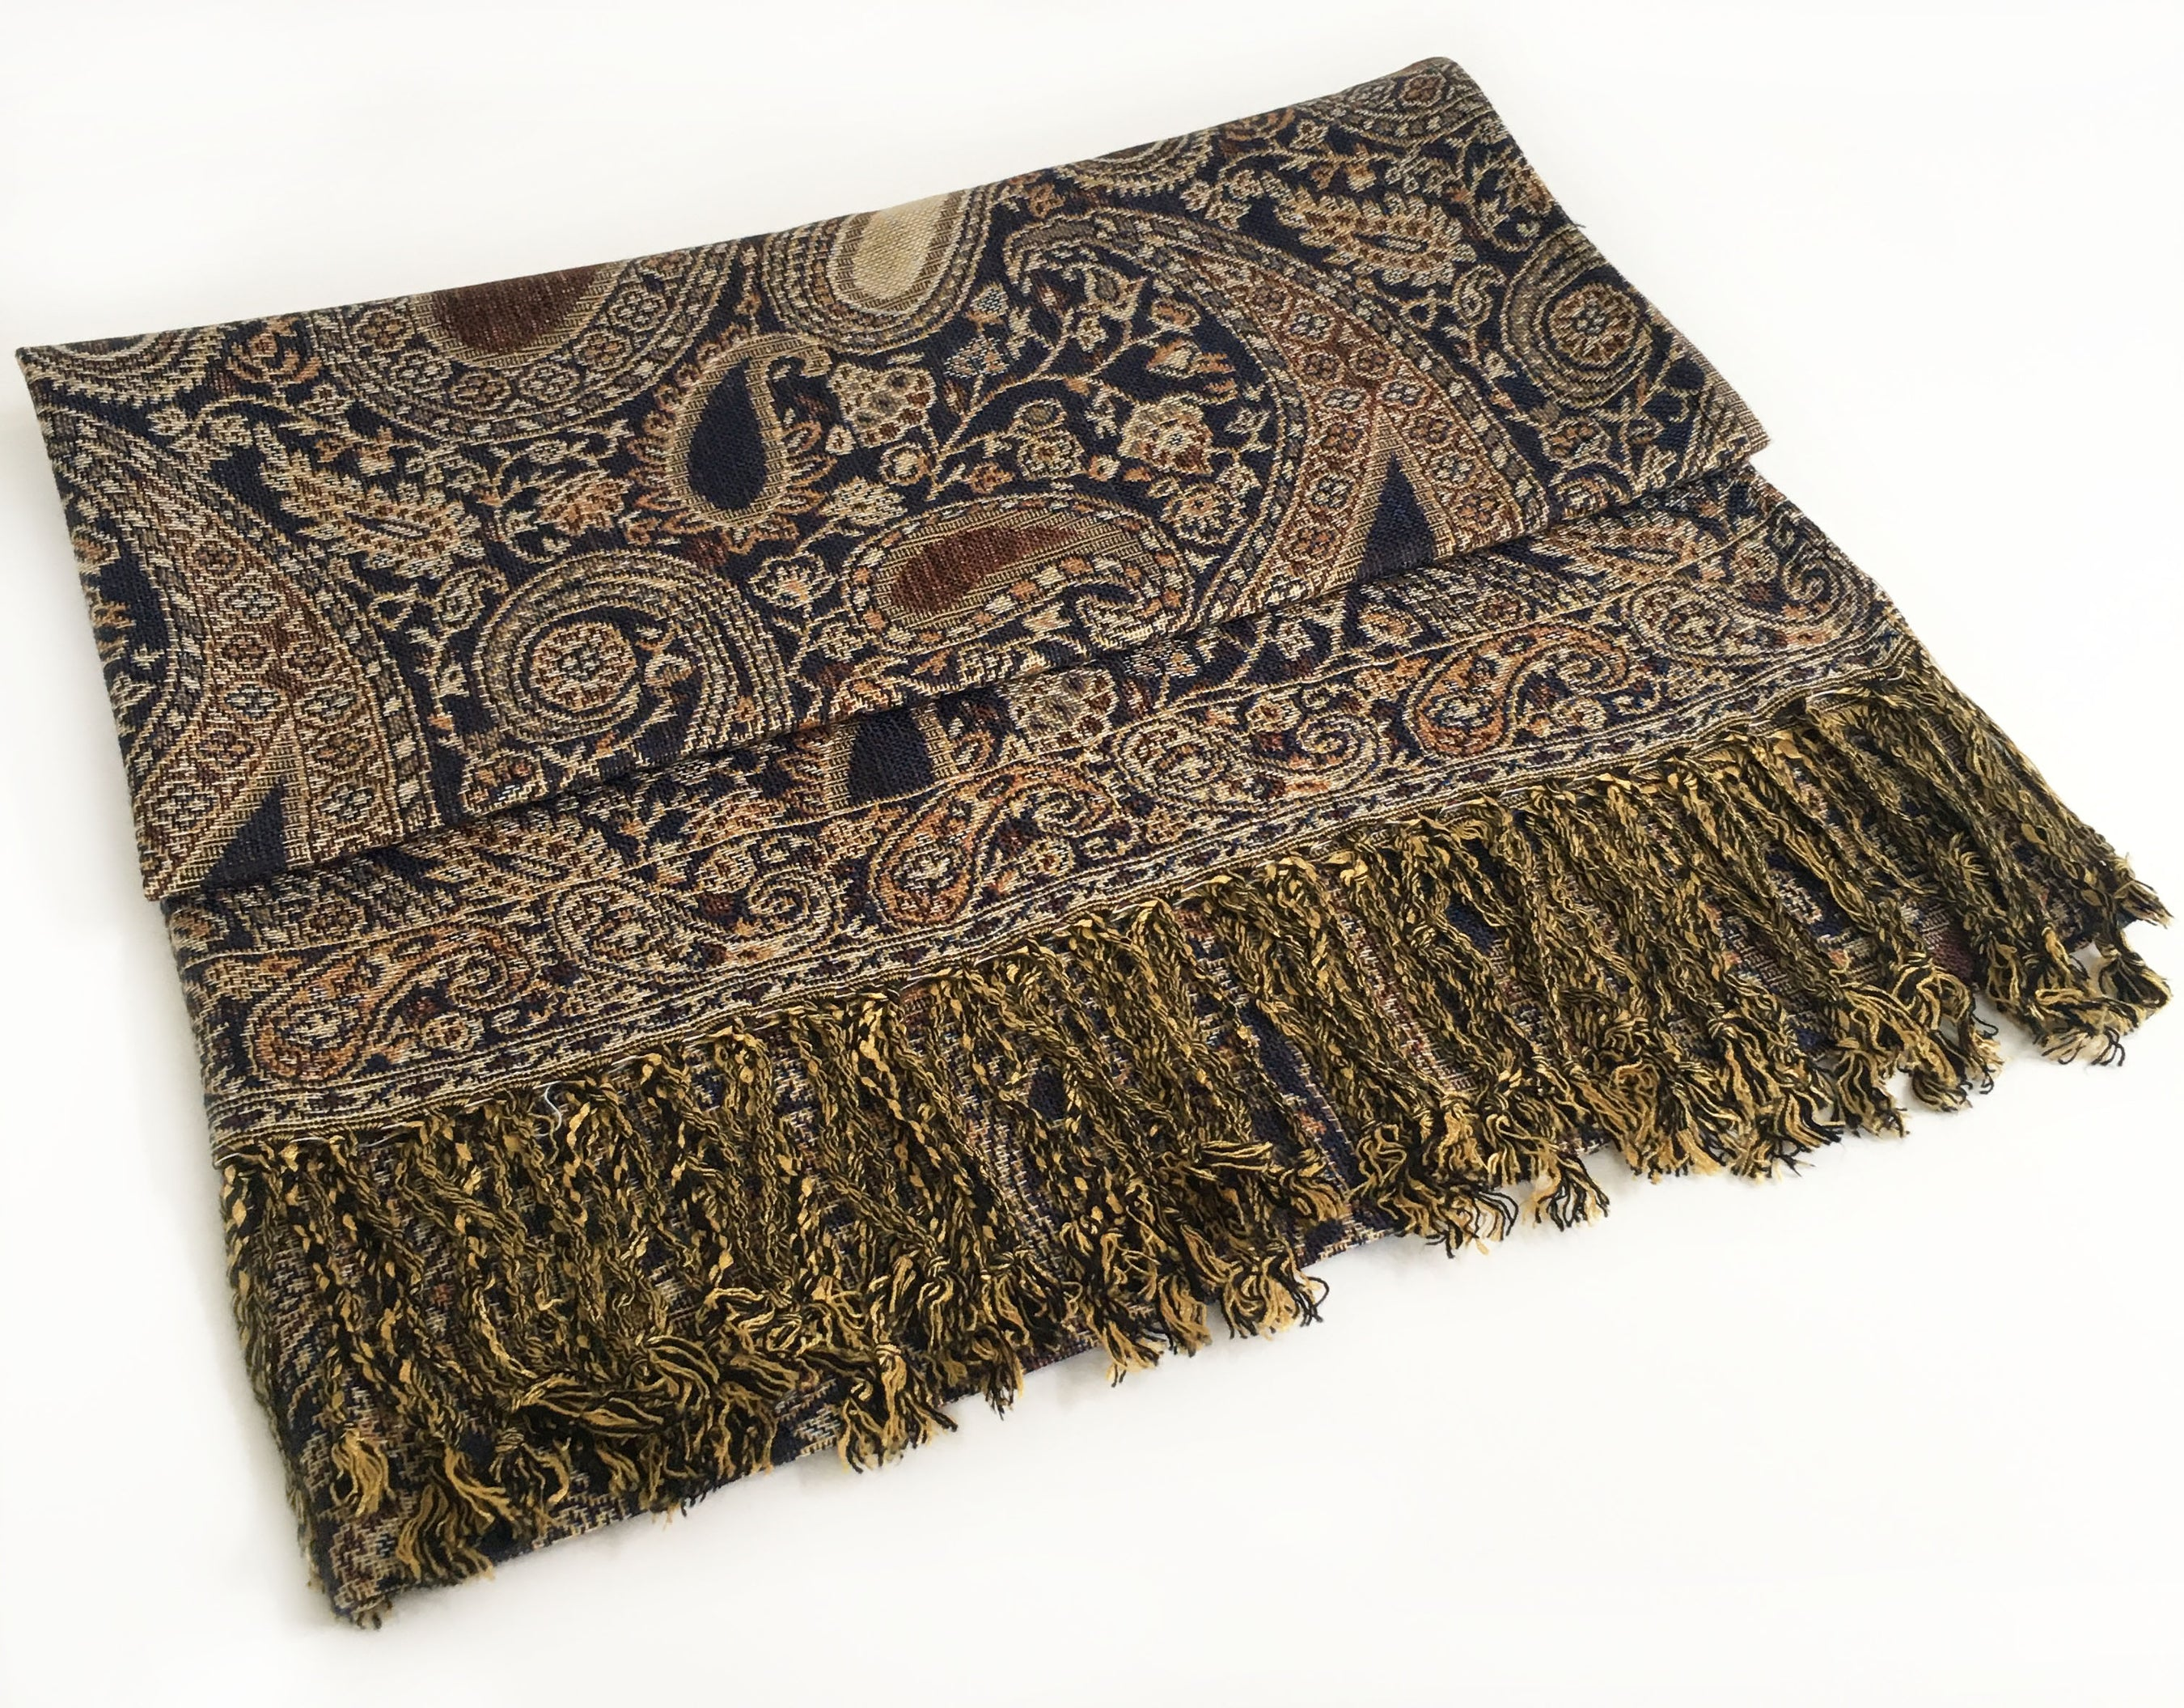 A-SHU LARGE BROWN MULTI COLOUR PAISLEY PRINT PASHMINA SHAWL SCARF - A-SHU.CO.UK